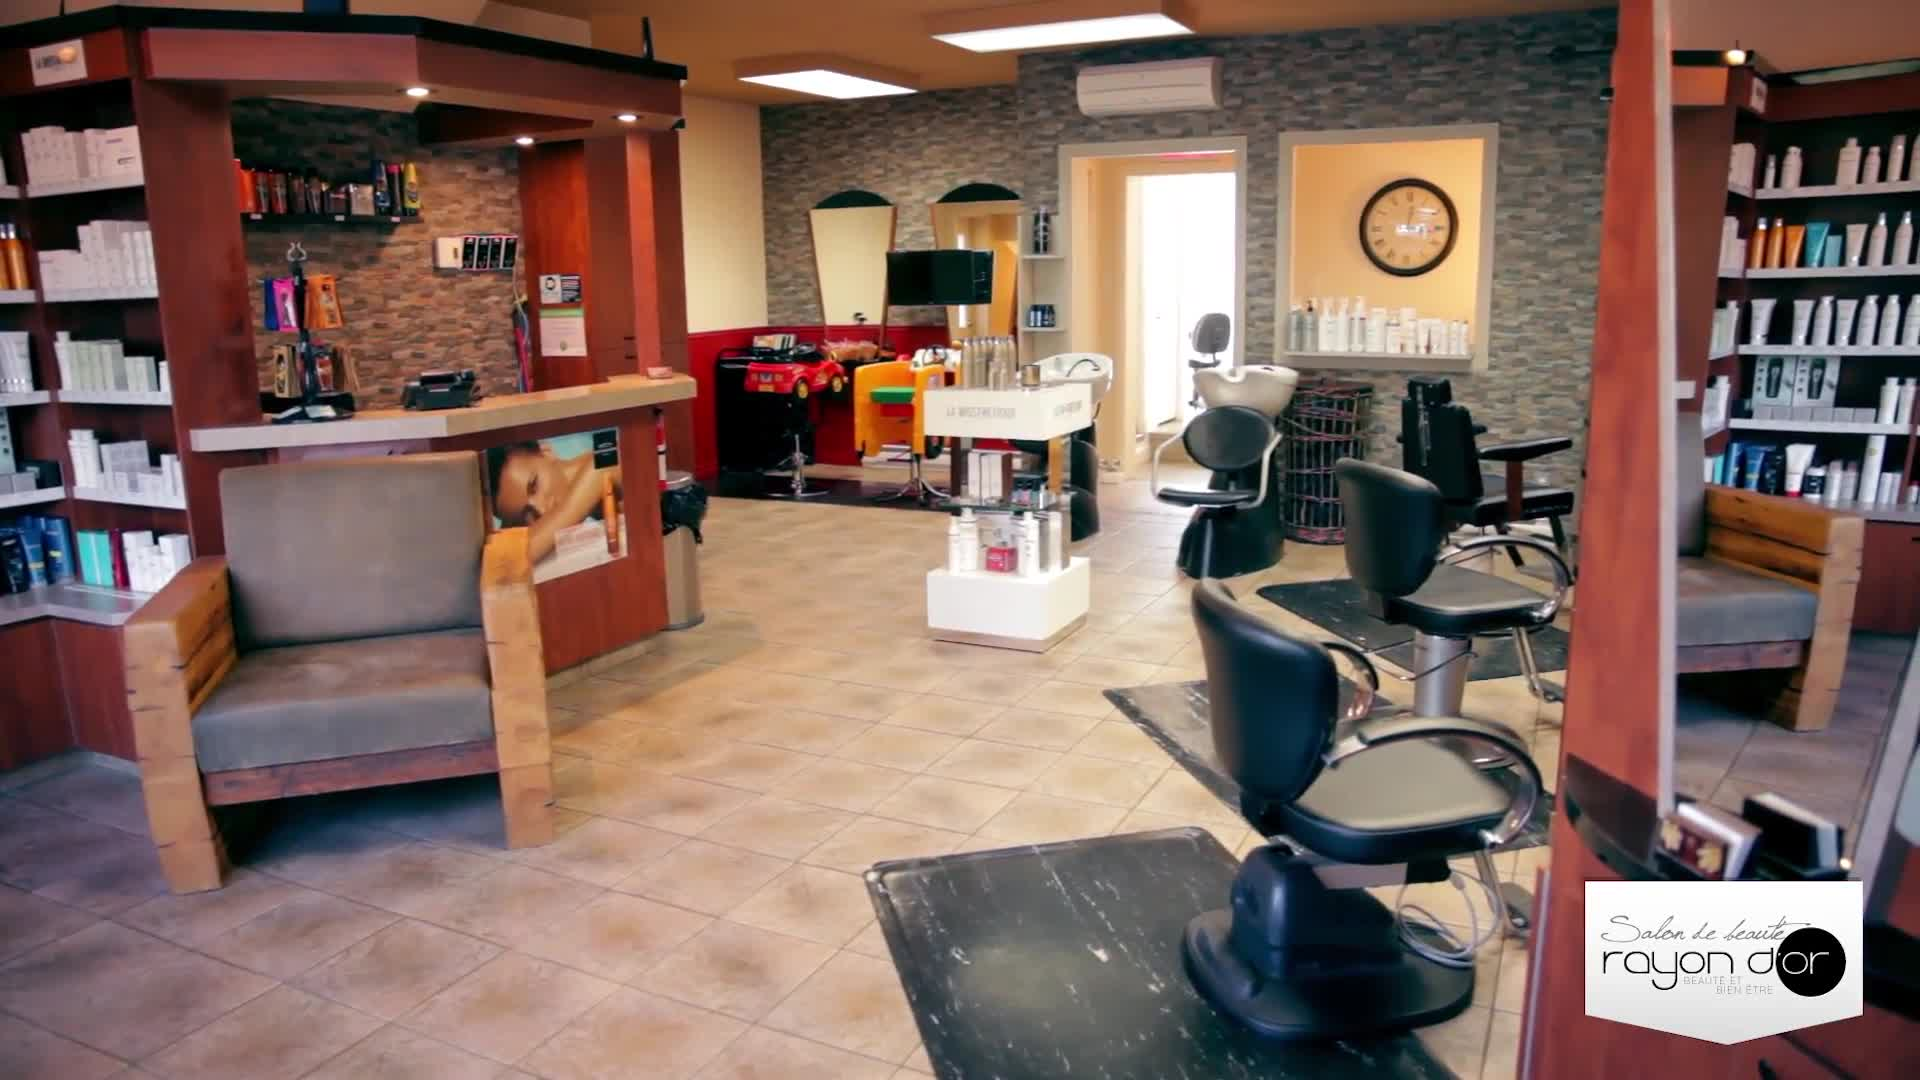 Salon de Beauté Rayon d'Or Inc - Épilation - 418-878-4932